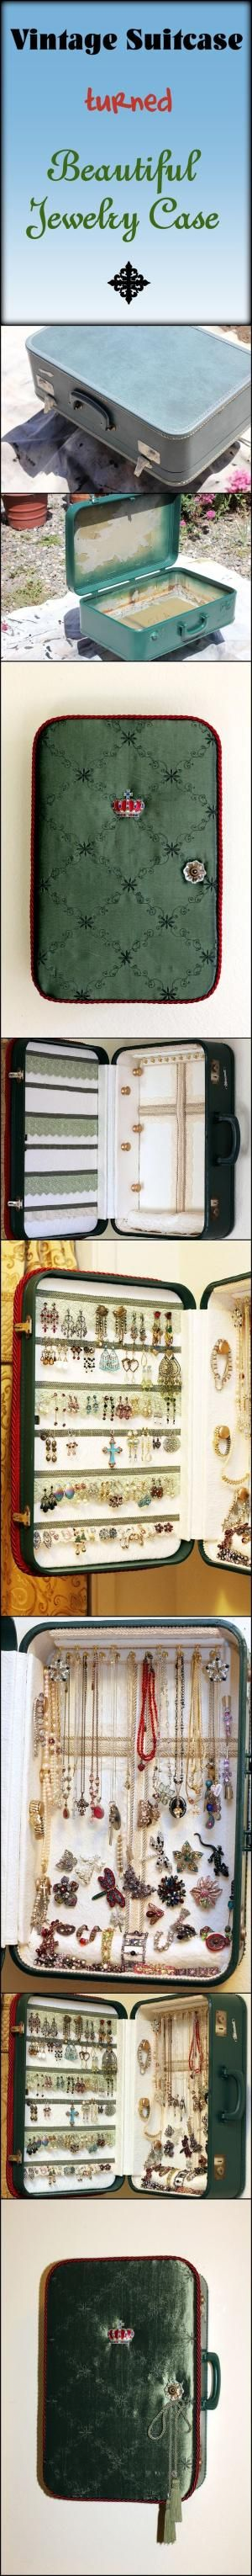 Vintage suitcase and Jewelry case. Can't wait to make the next jewelry suitc…